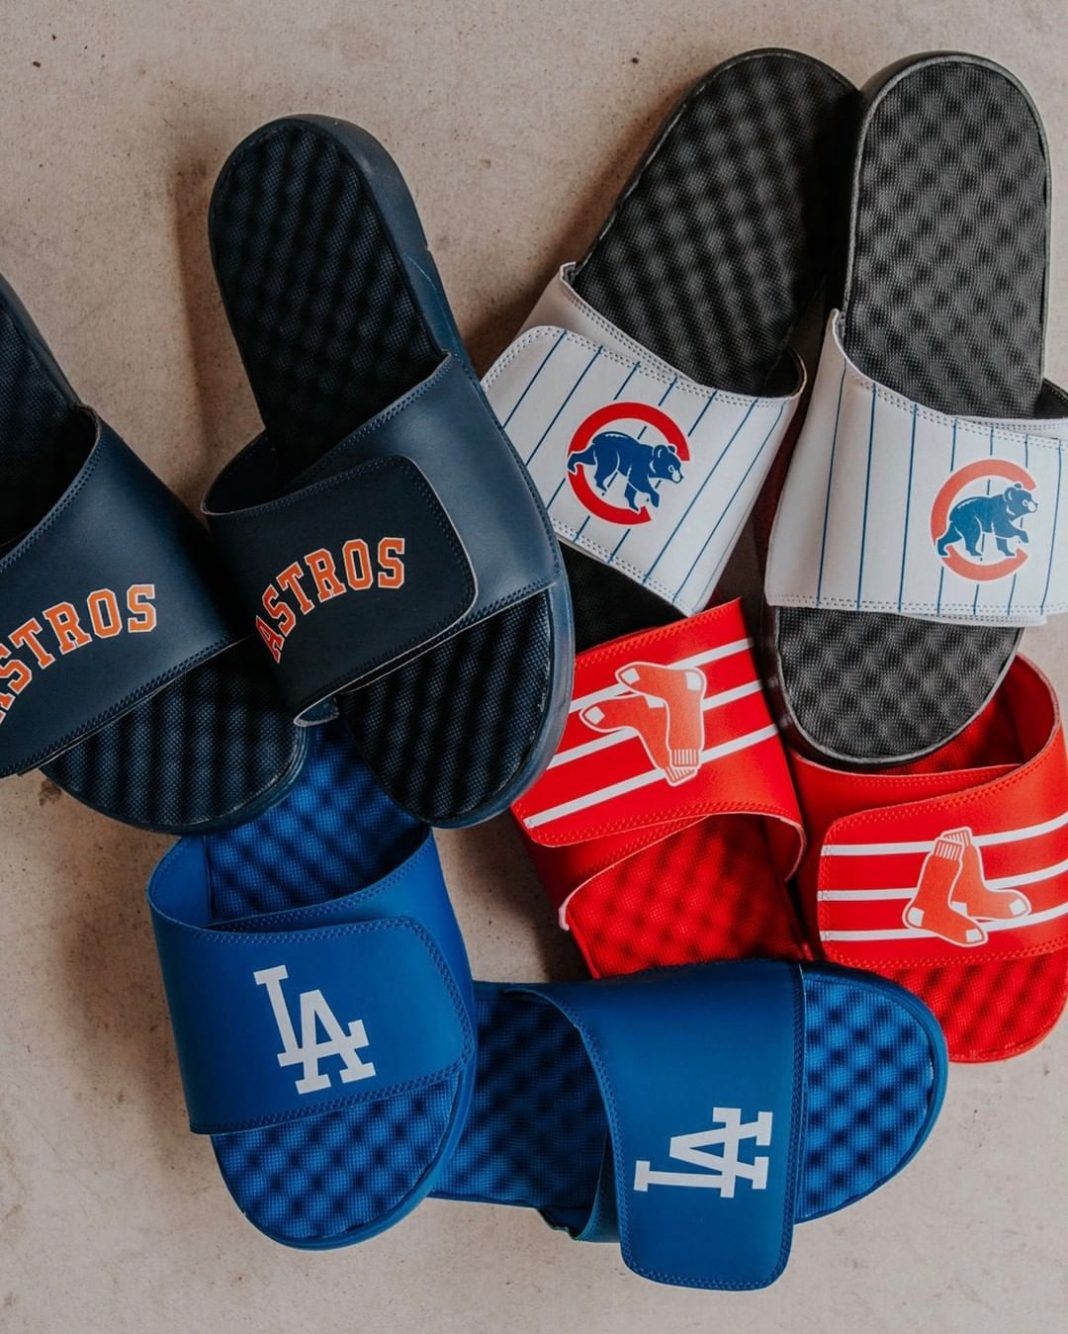 BREAKING - Our friends over at @islideusa are coming out swinging this MLB seaso...